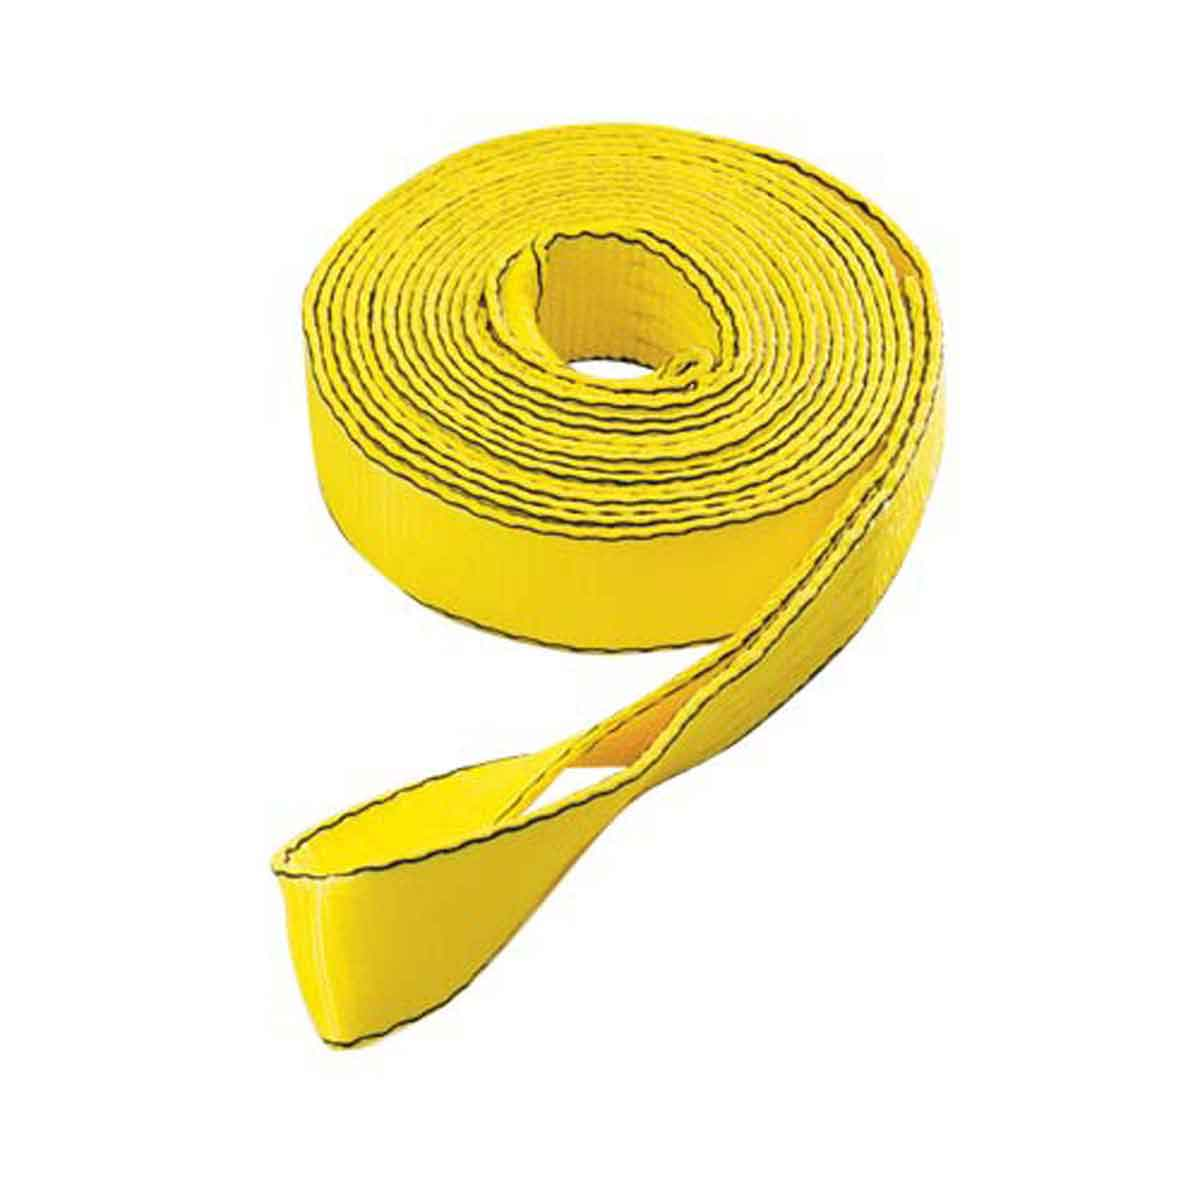 Tow Strap - Heavy Duty - 2in. X 20 ft. - 17000 lb. Cap.